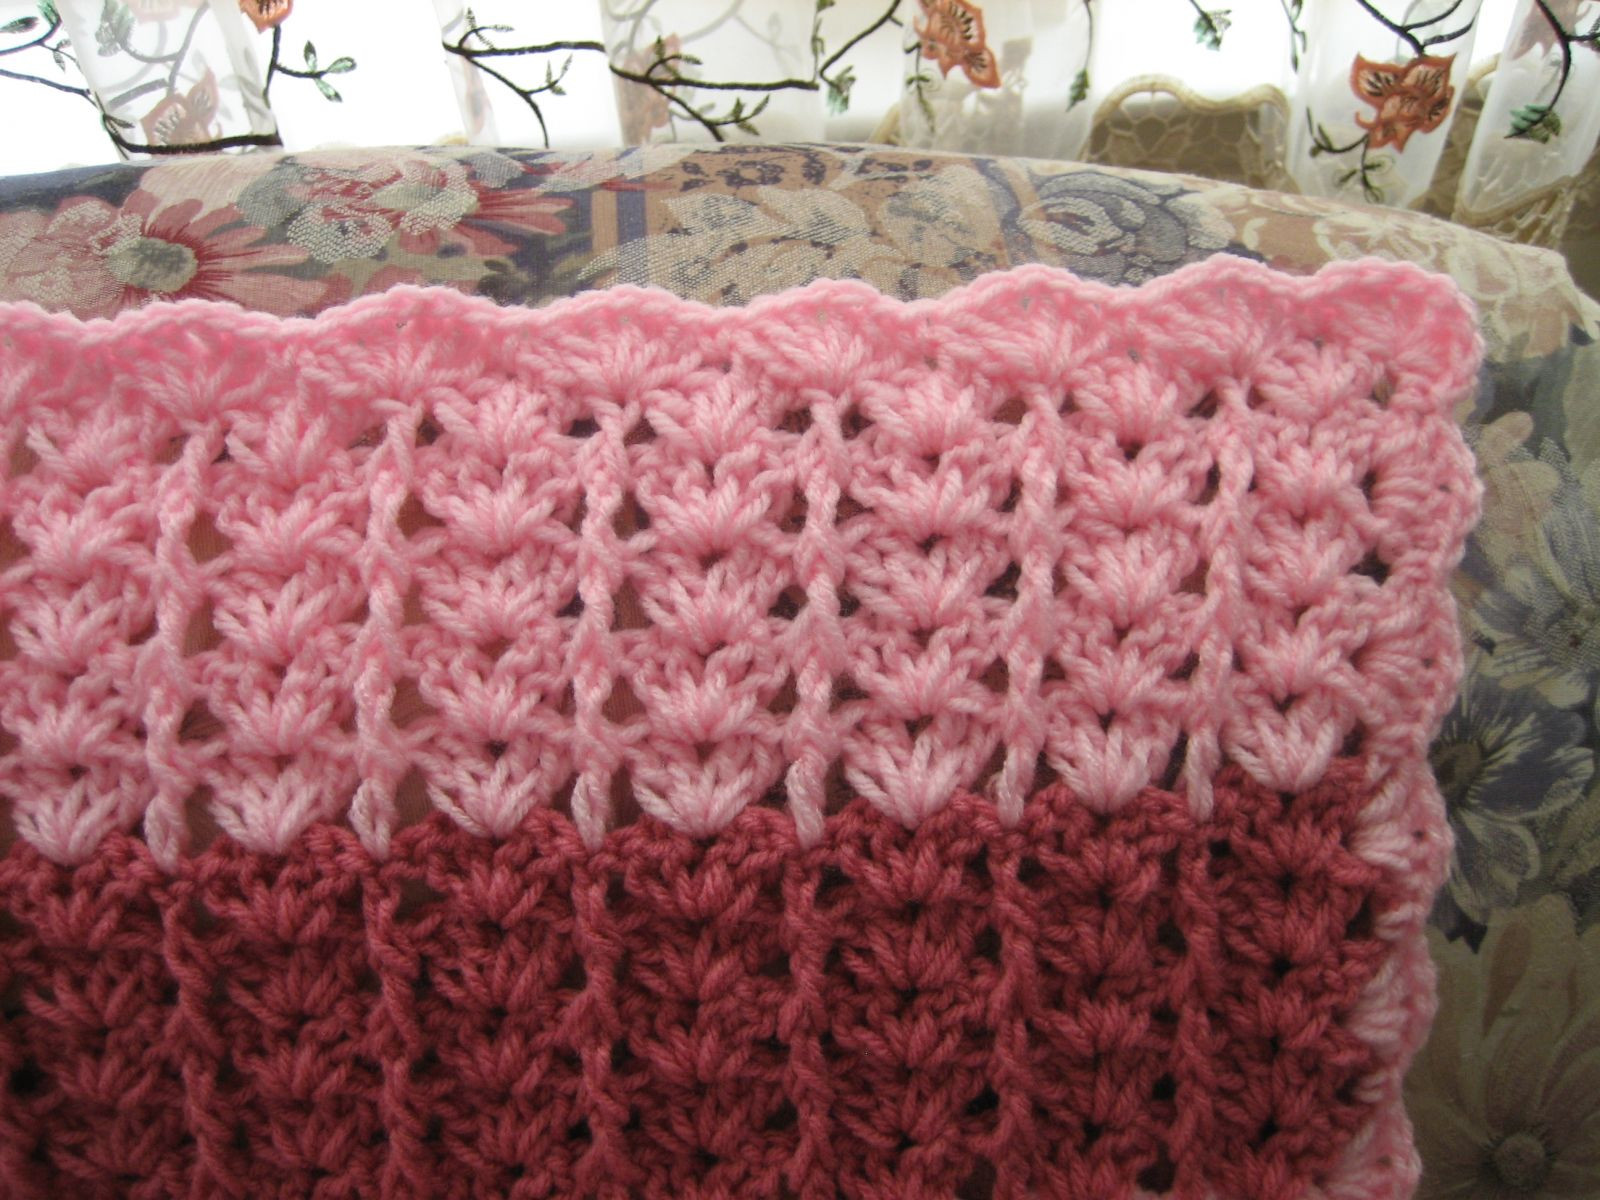 Lacy Baby Blanket Crochet Pattern New Lacy Shades Of Pink Shells Afghan Of New 40 Images Lacy Baby Blanket Crochet Pattern